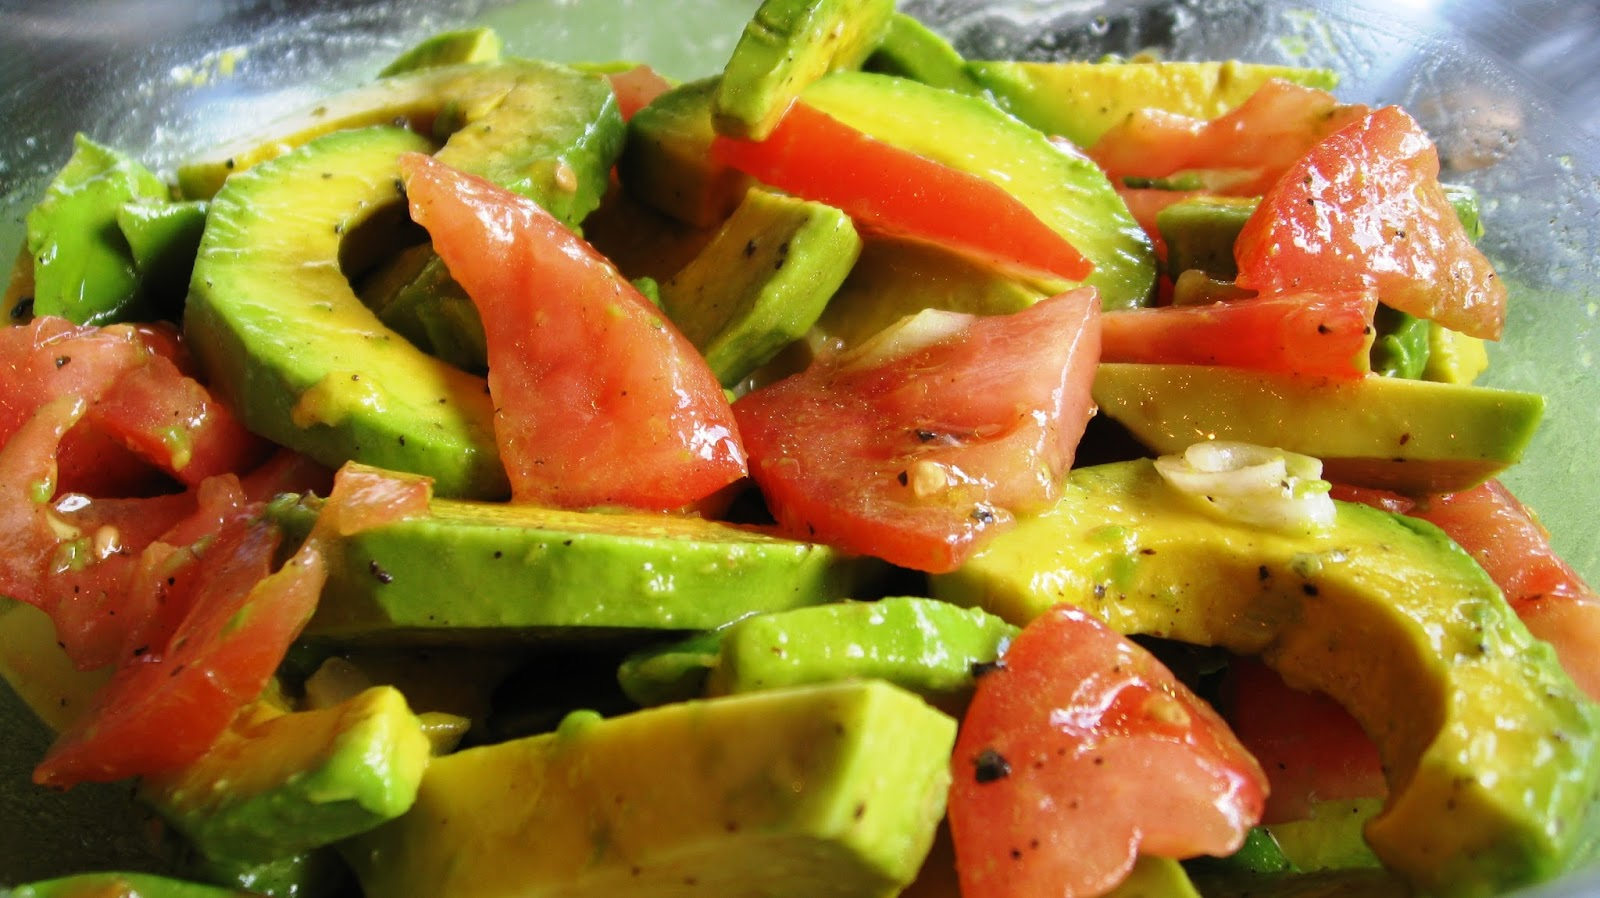 tomato corn and avocado salad comma happy tomato and avocado salad